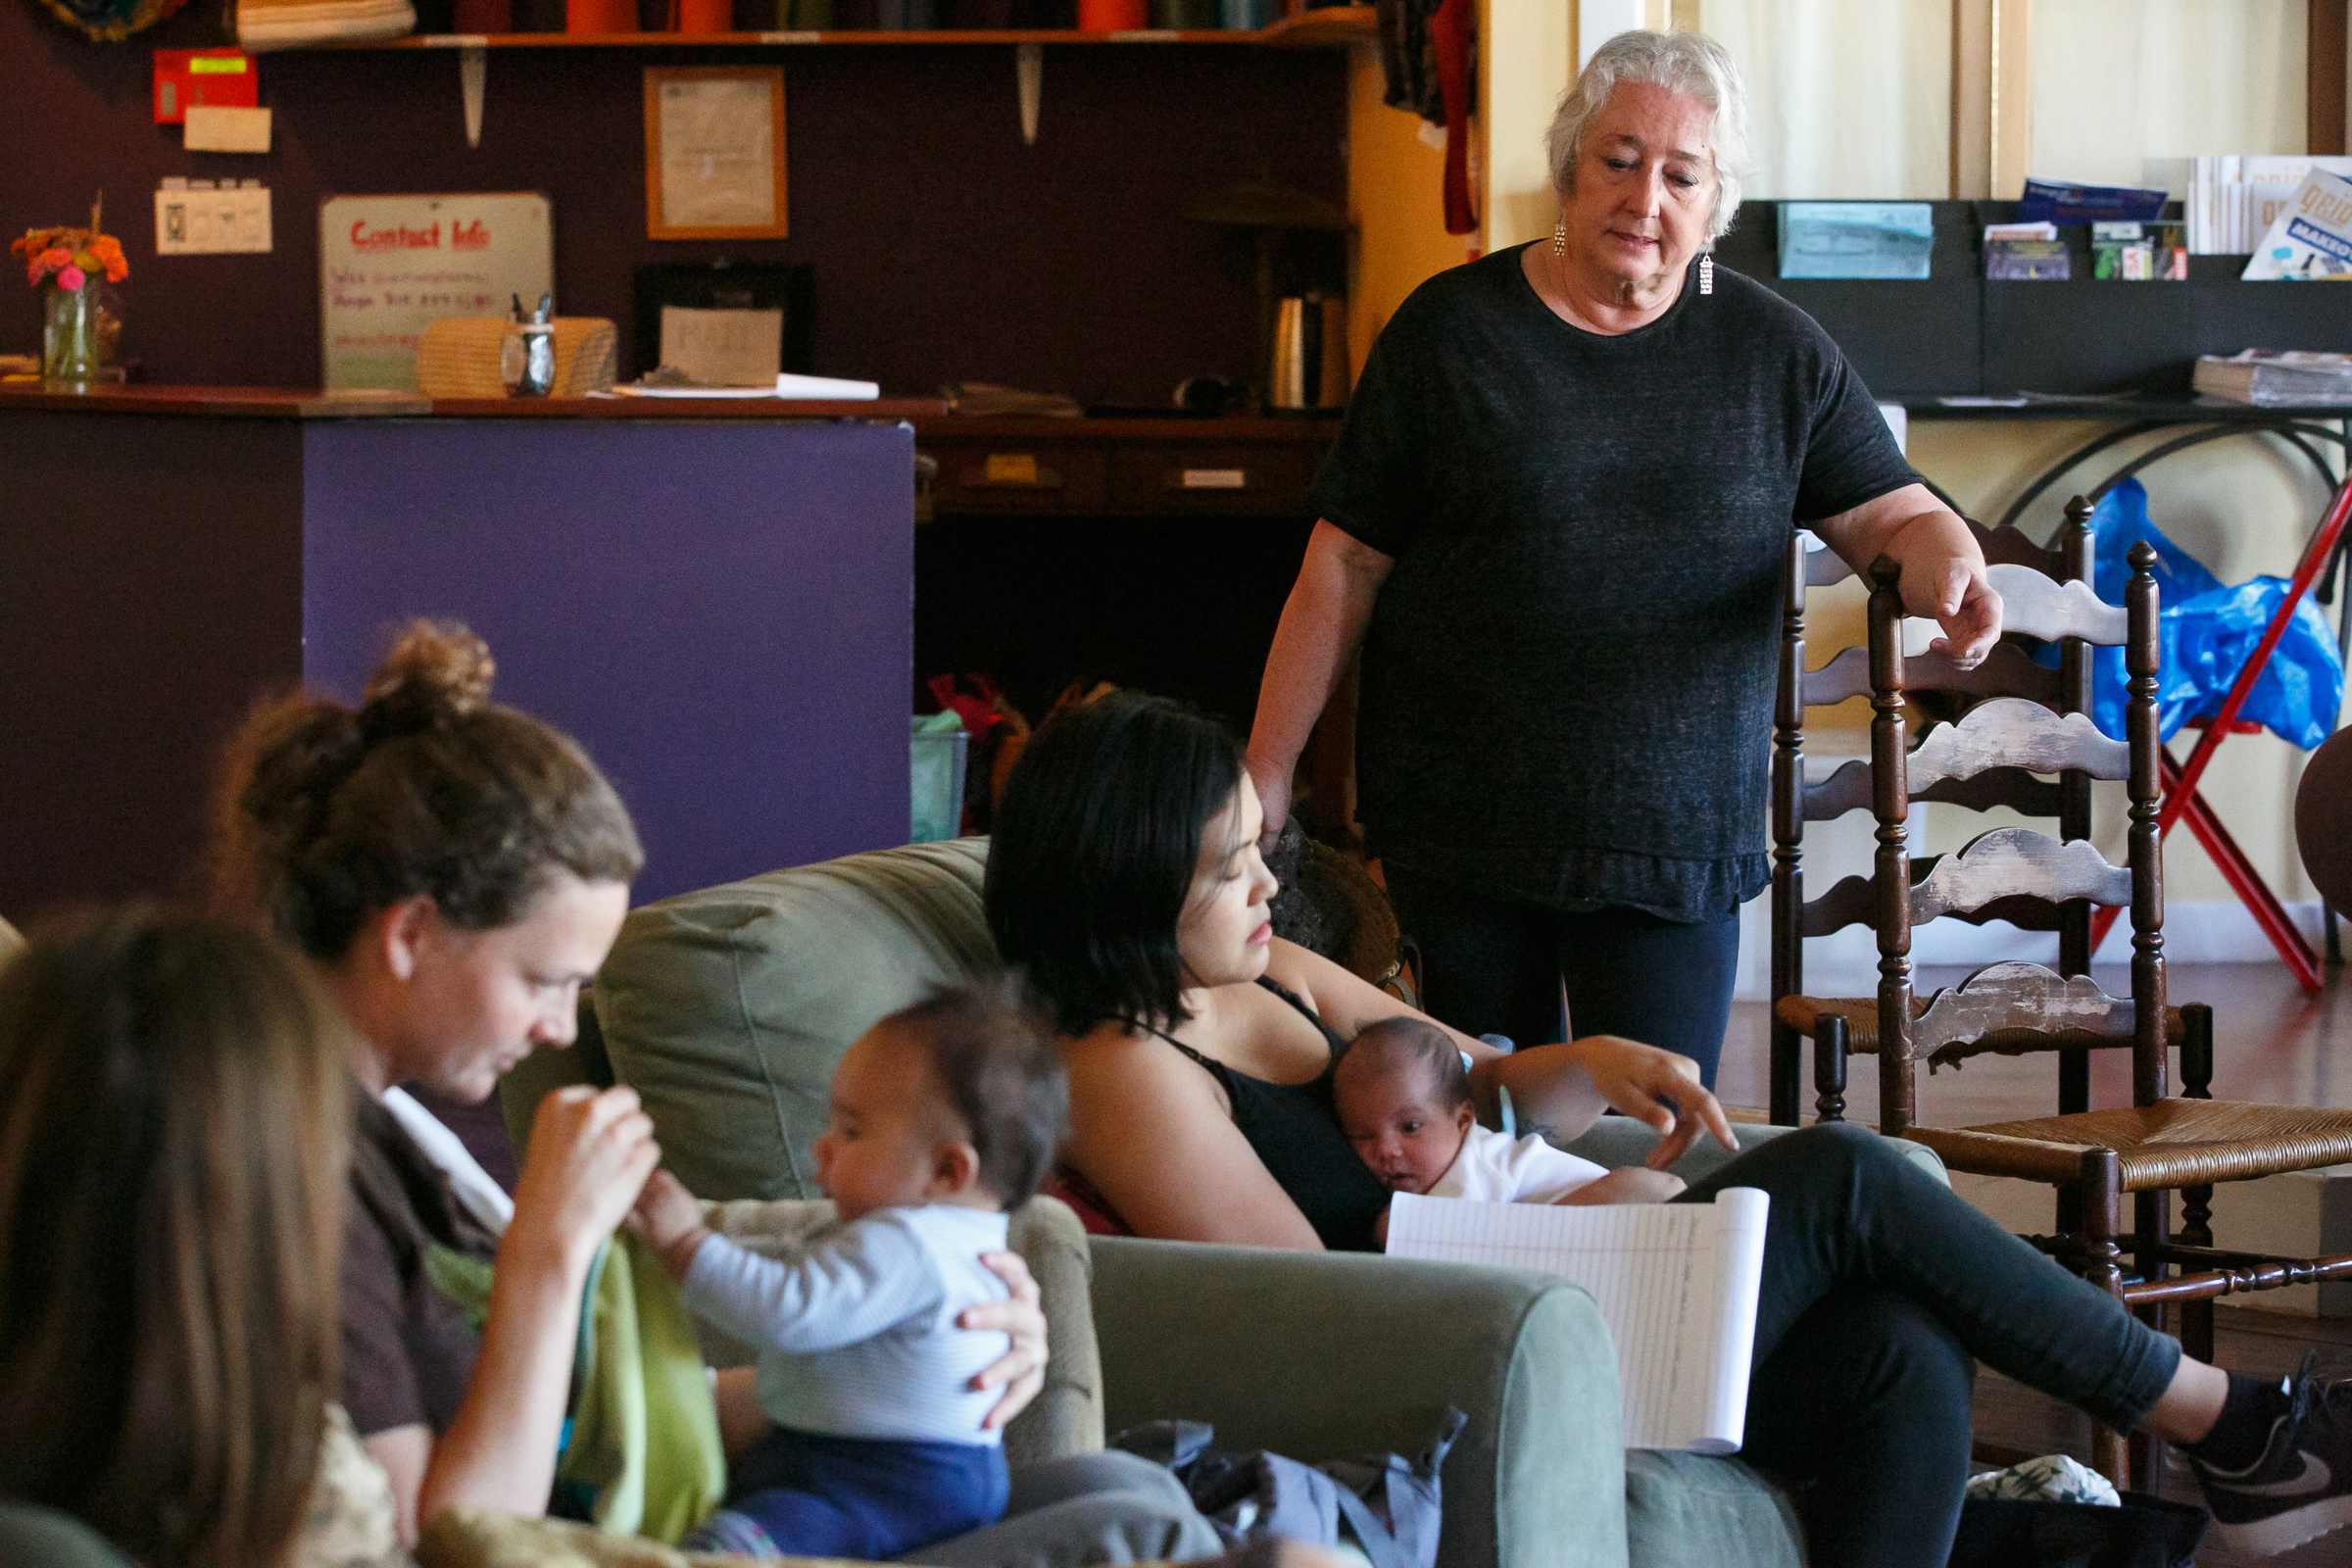 Veteran lactation consultant Patty Siegrist, standing right, leads a breastfeeding support group.